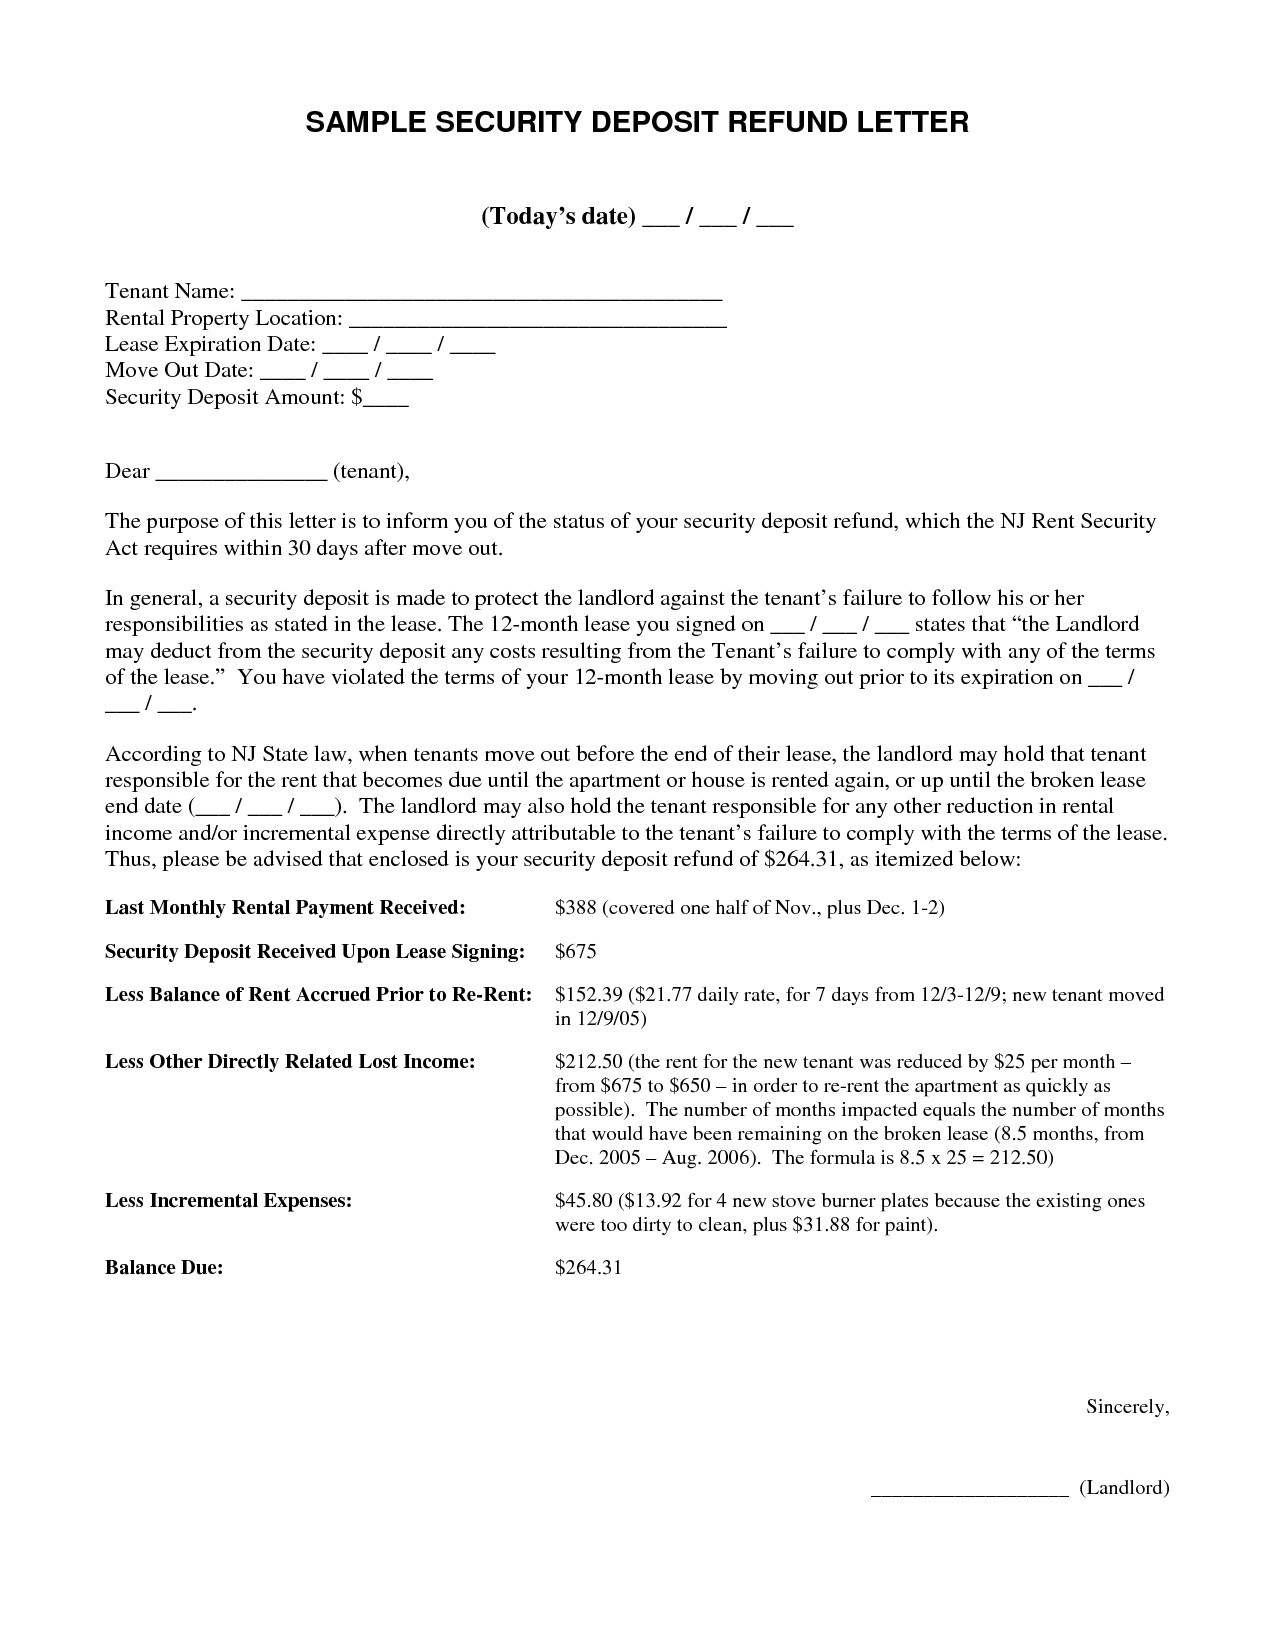 Rent Reduction Letter Template - Inspirationa Sample Letter Request Rent Reduction Archives